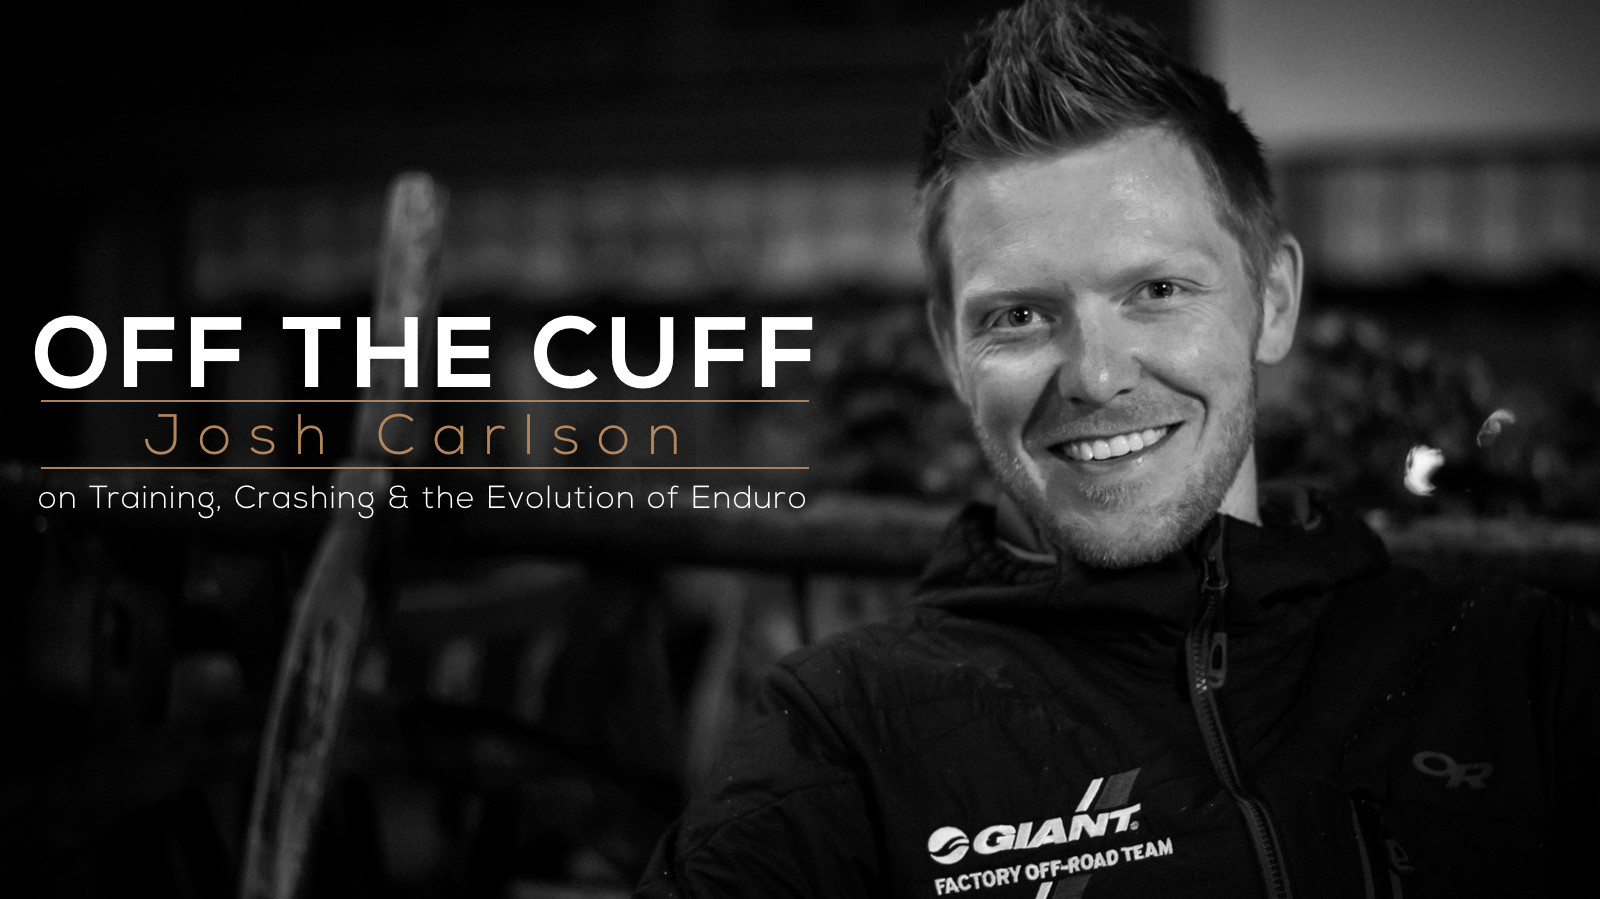 Off The Cuff: Josh Carlson on Training, Crashing, and the Evolution of Enduro